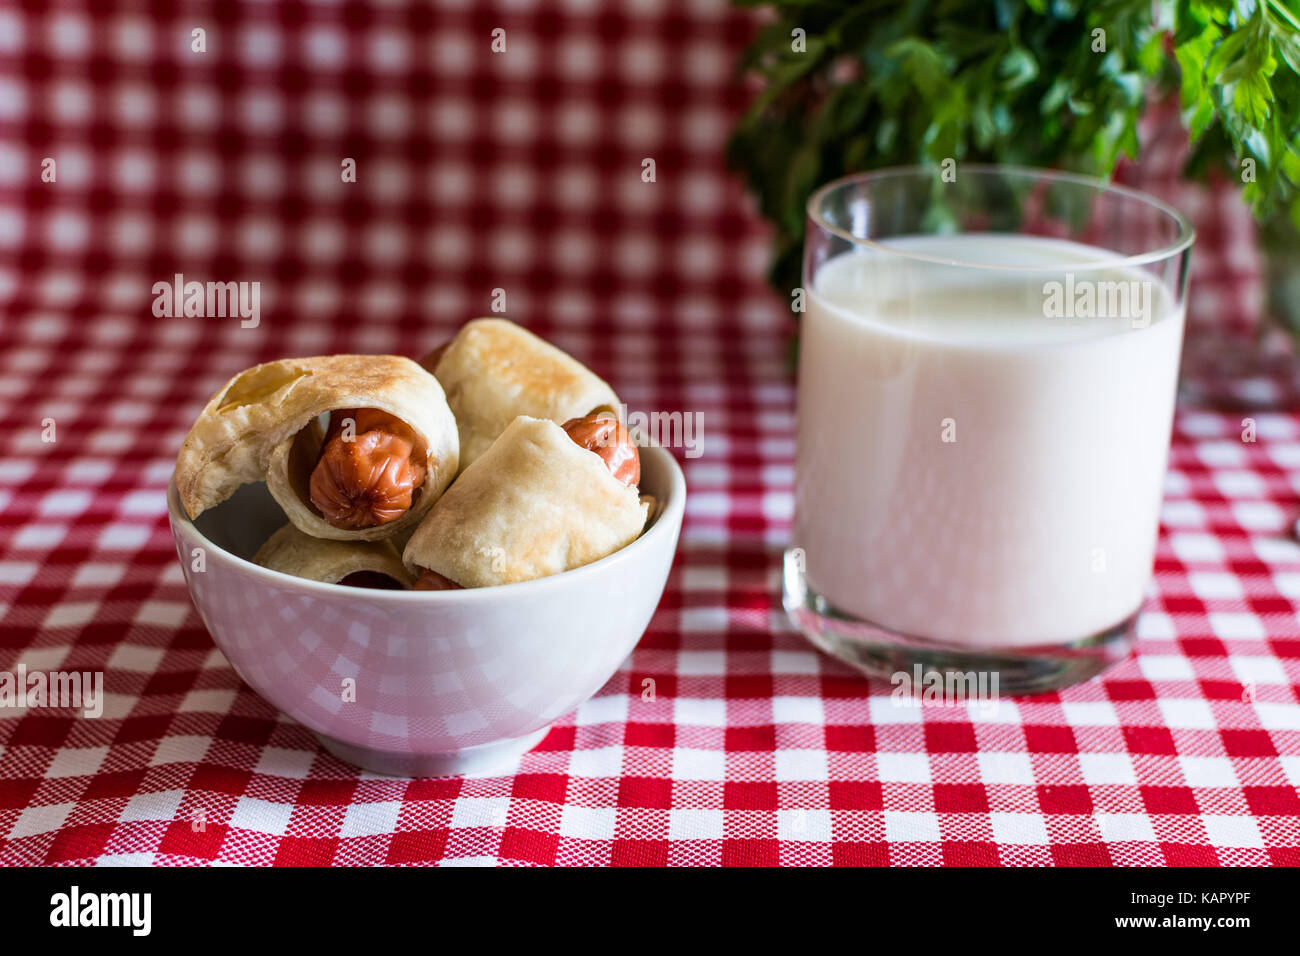 Plate with mini hot dogs homemade (Sausage in the dough) and a glass of fresh cow's milk with parsley on a plaid - Stock Image